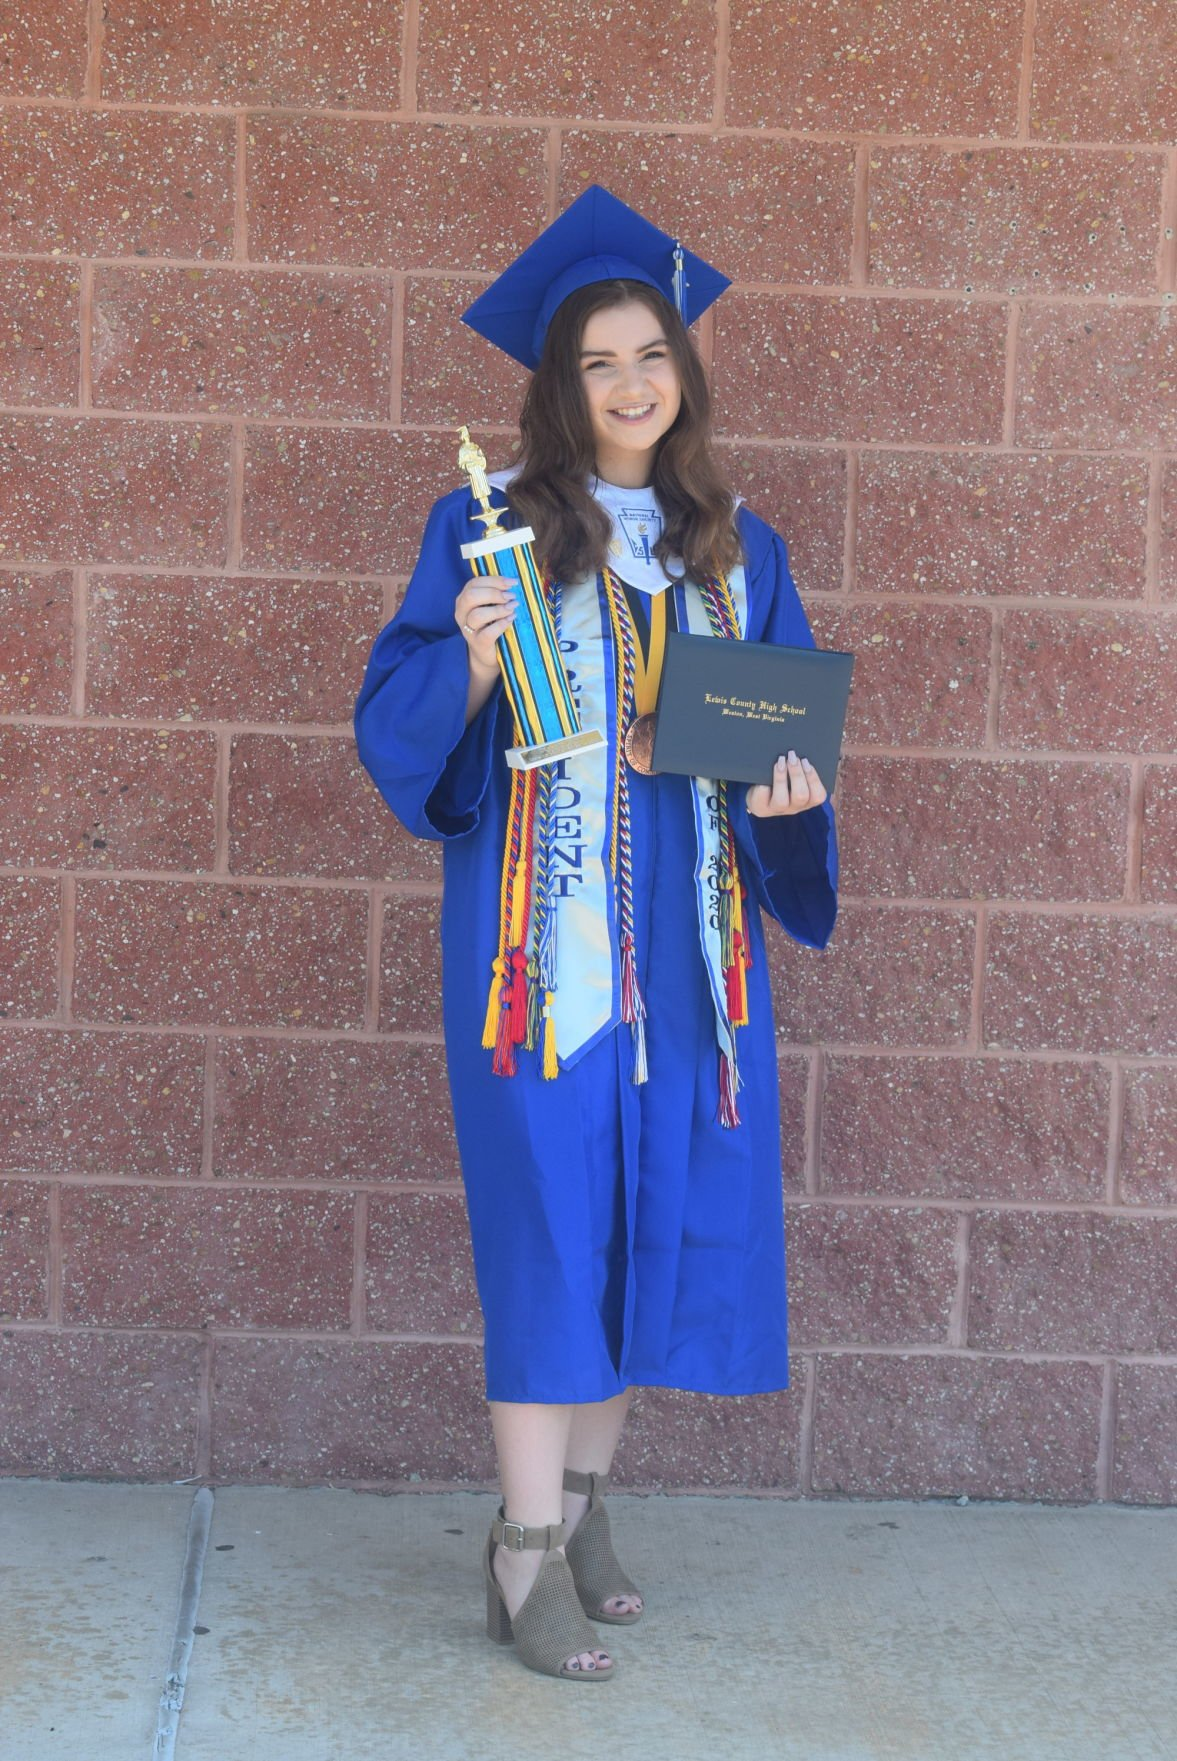 Lewis County High School holds graduation